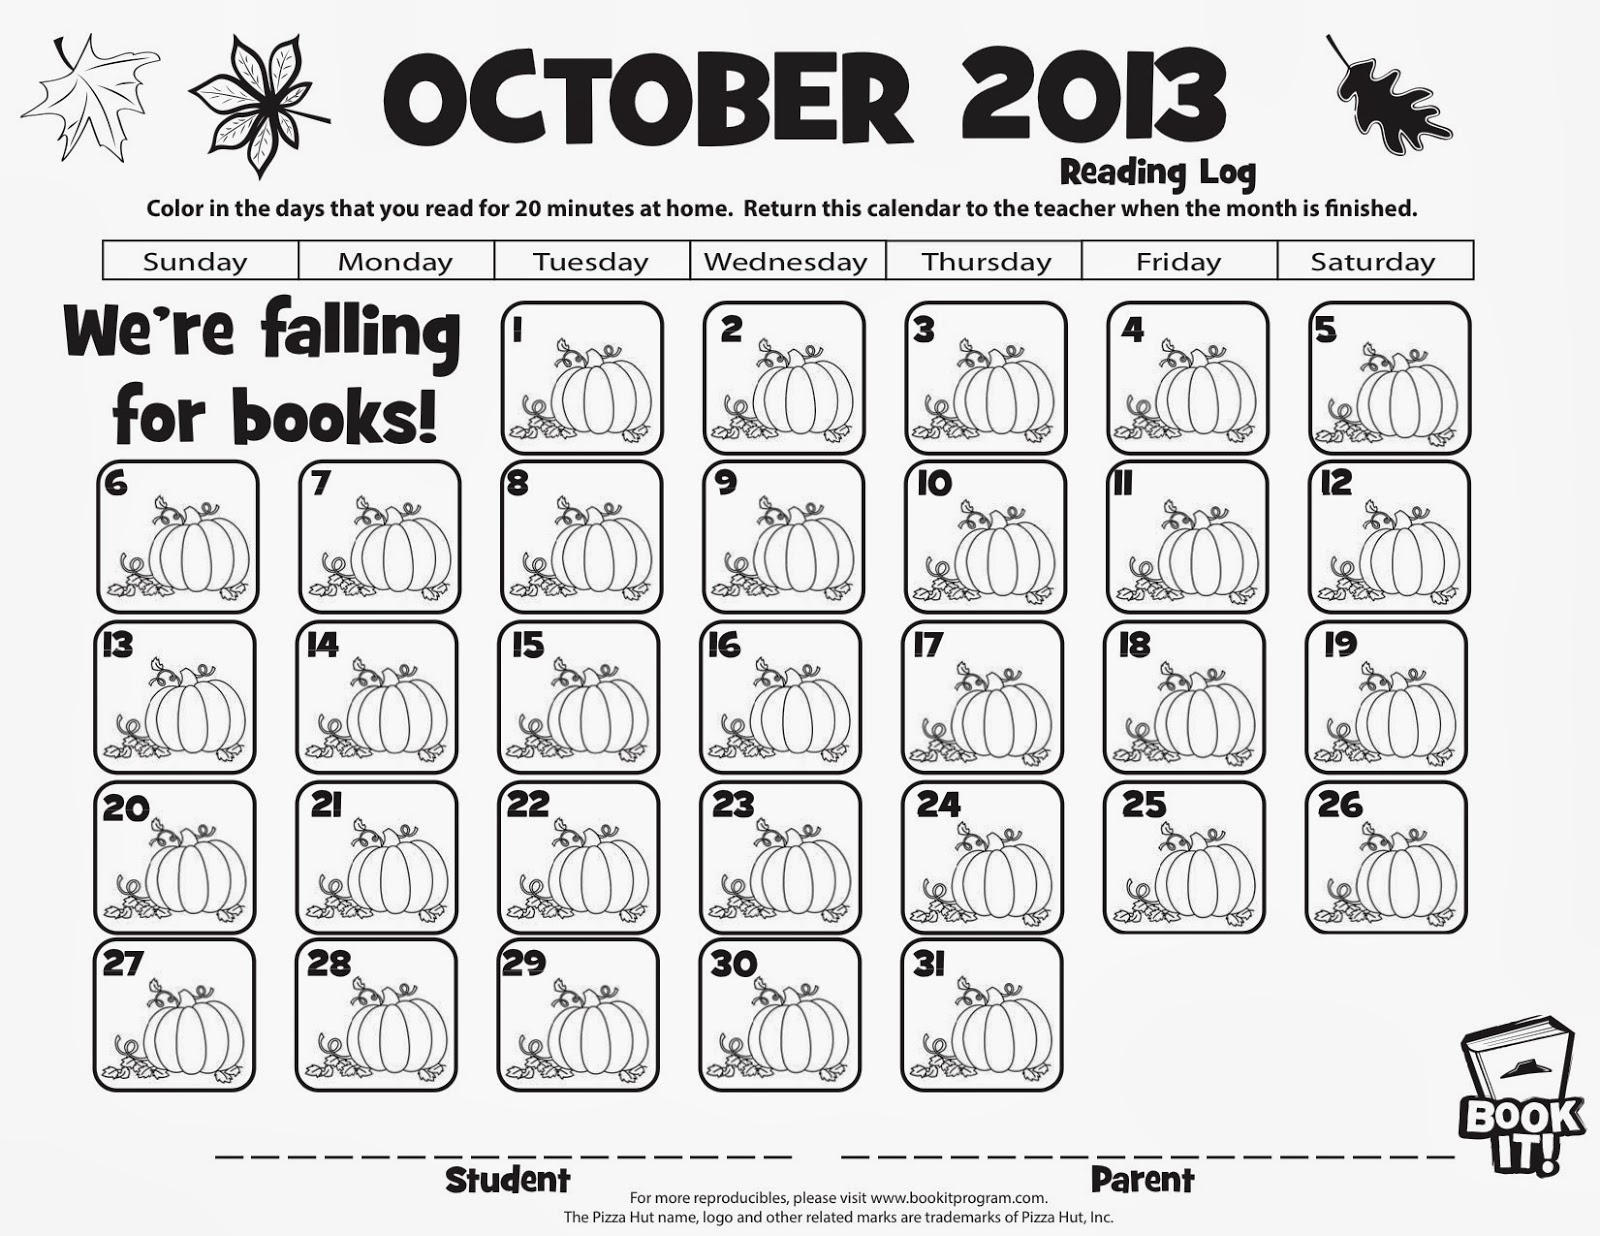 From Reading to Recess: Pizza Hut Book-It Challenge!